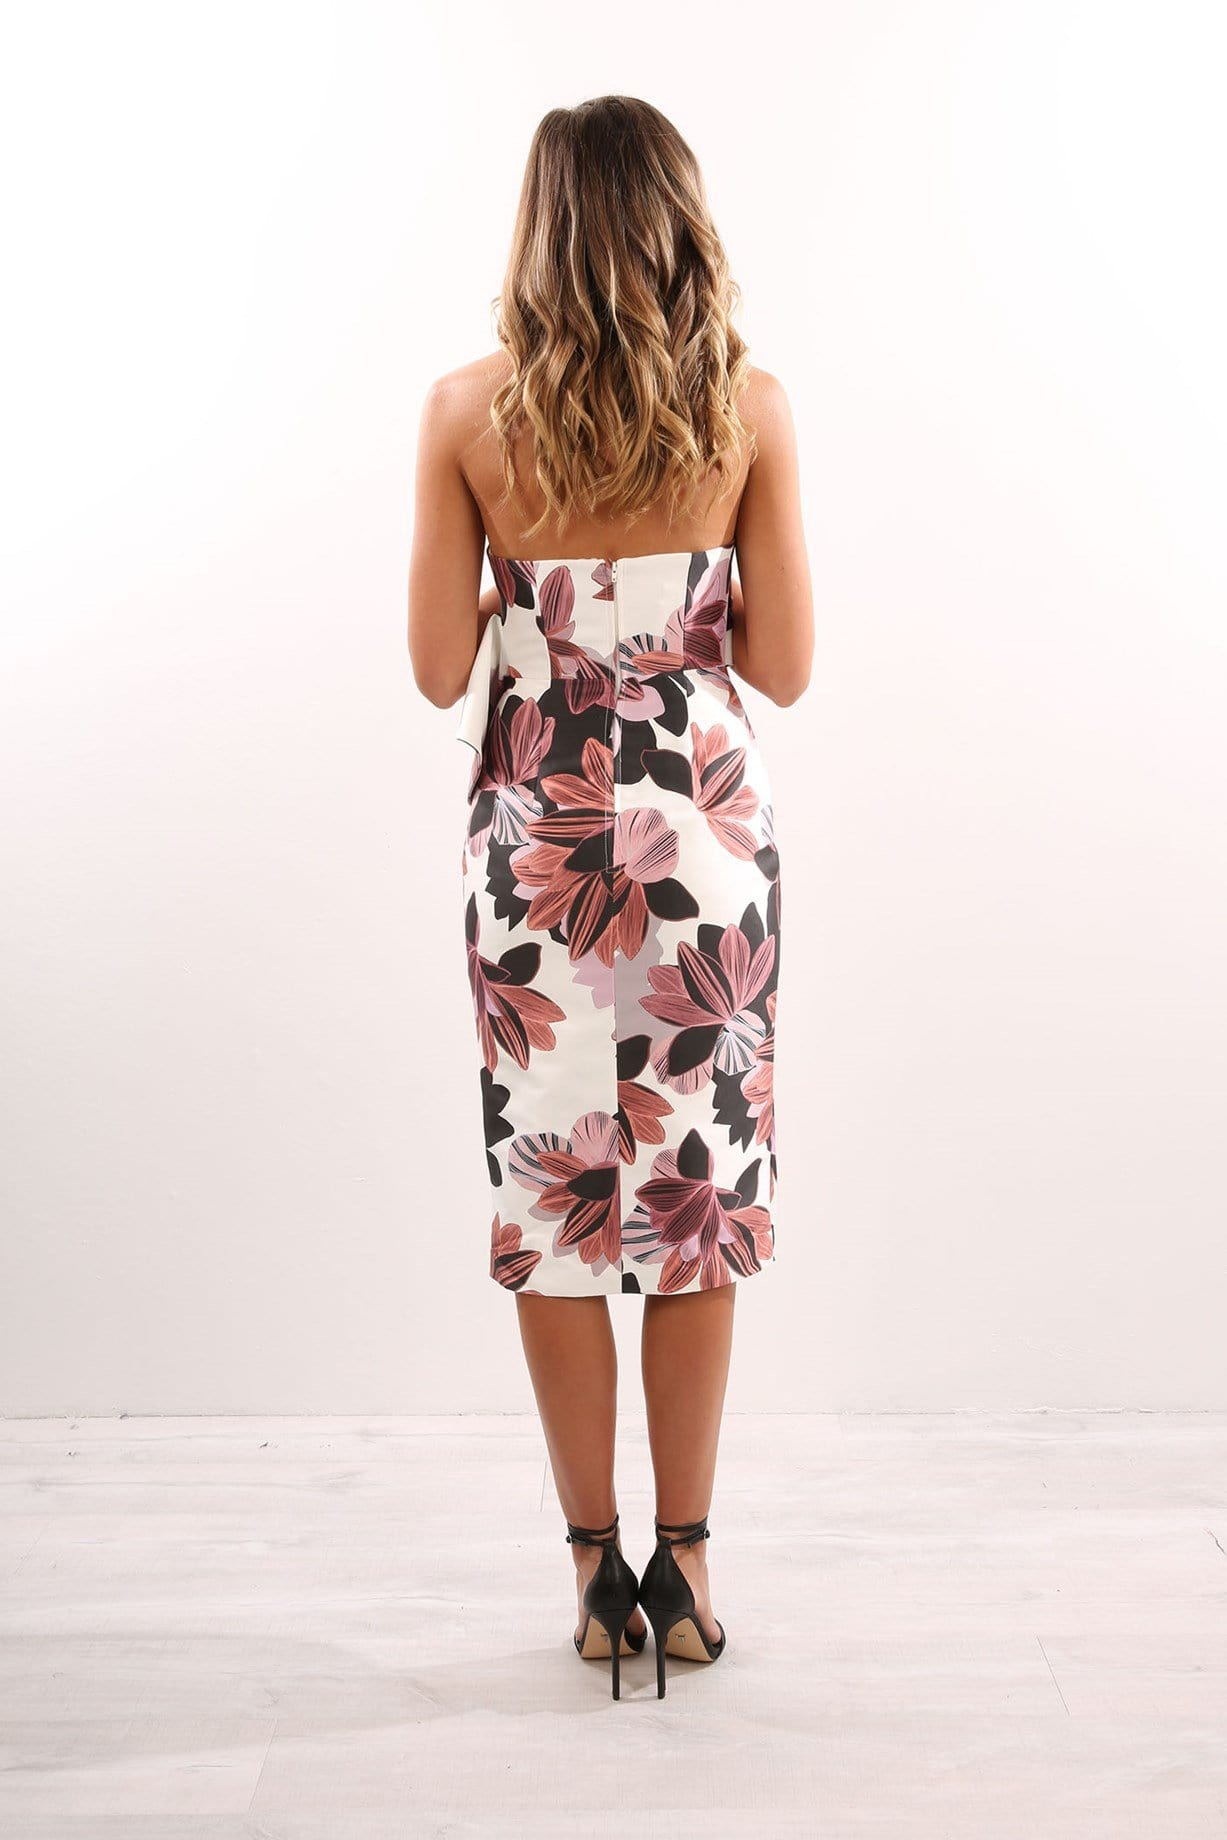 Awake Dress Collage Floral